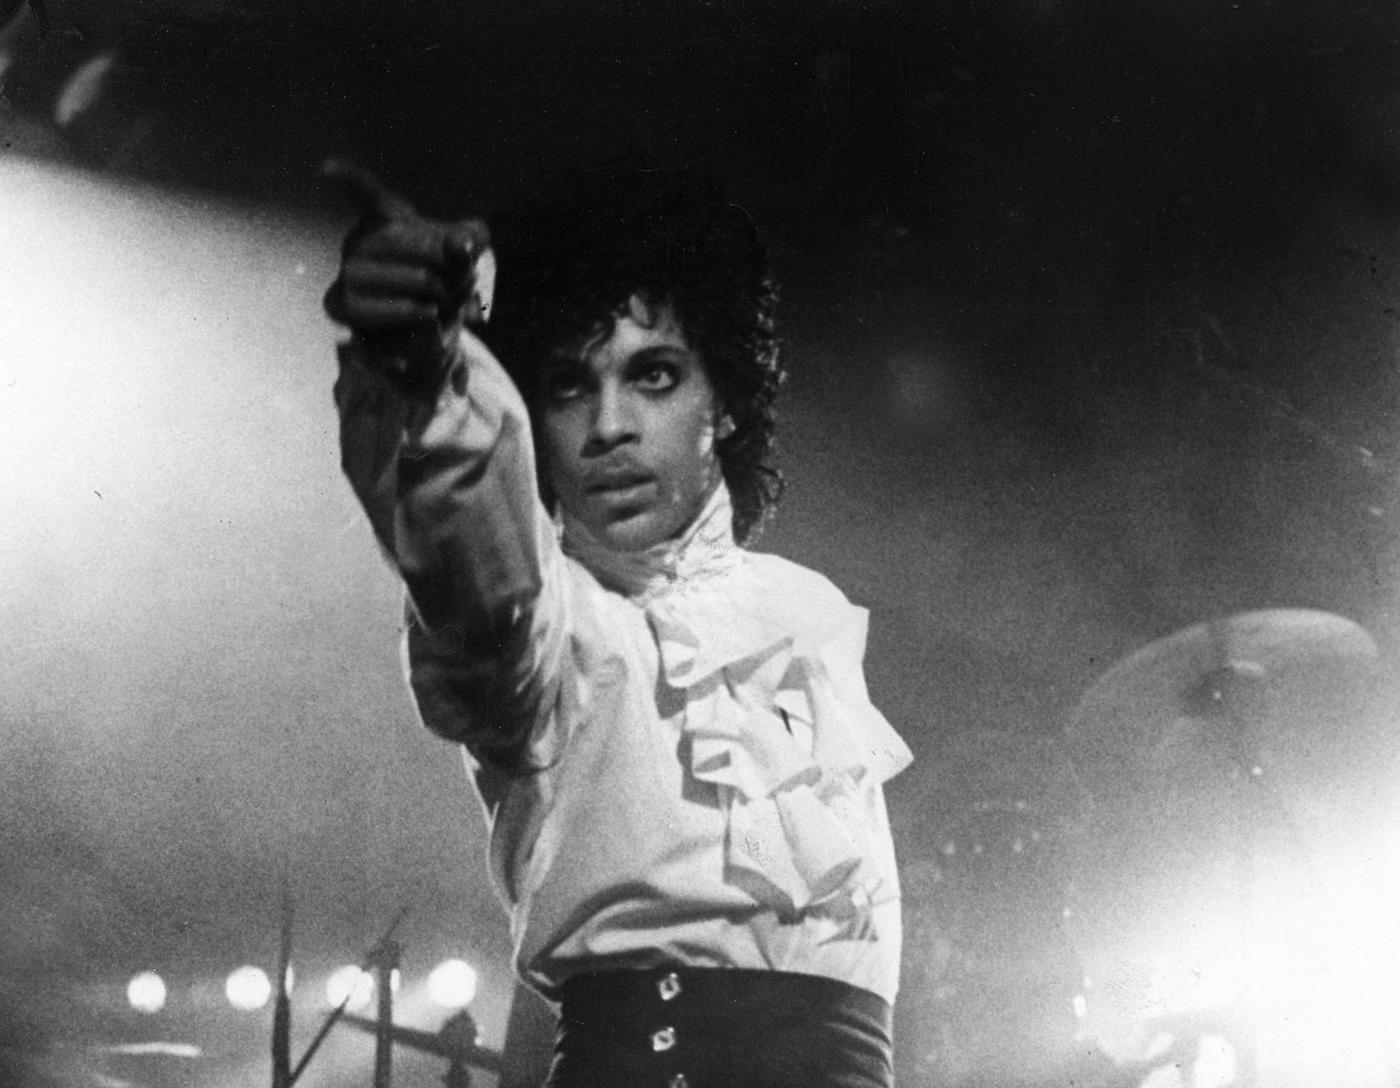 Prince, Michael Jackson, and James Brown on stage together was a gift we didn't deserve - I wrote about having to call my dad when Prince died. Read more here.